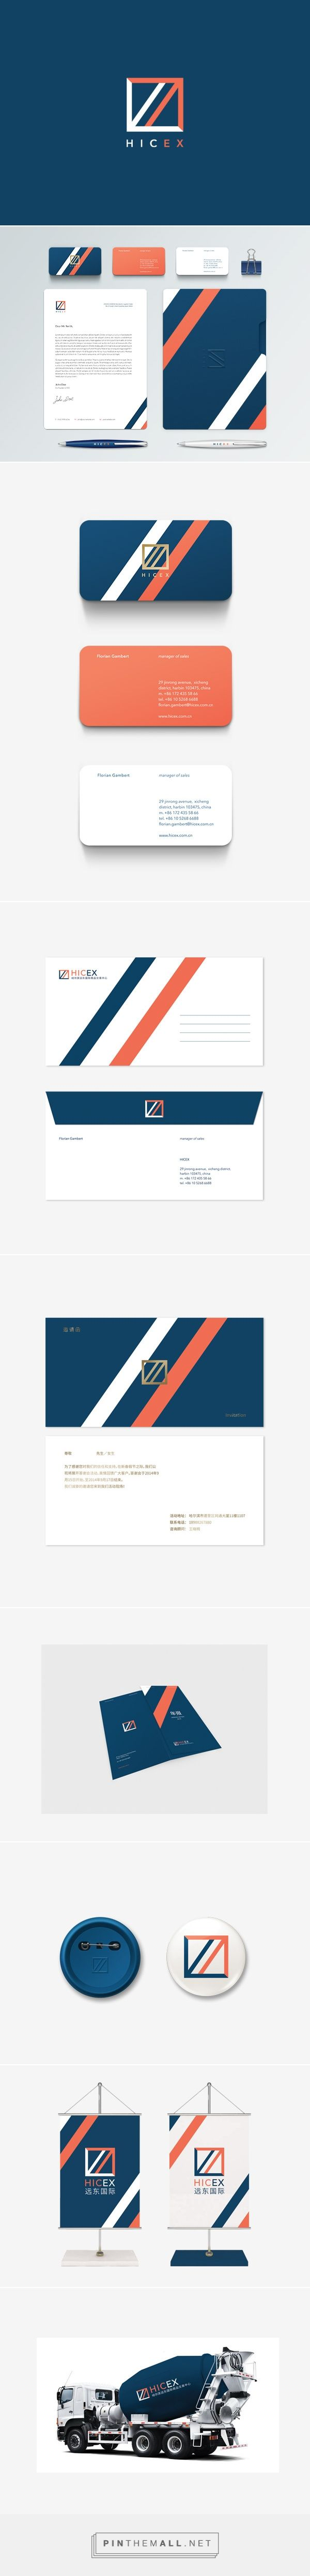 HICEX Harbin international Commodities Exchange on Behance | Fivestar Branding…